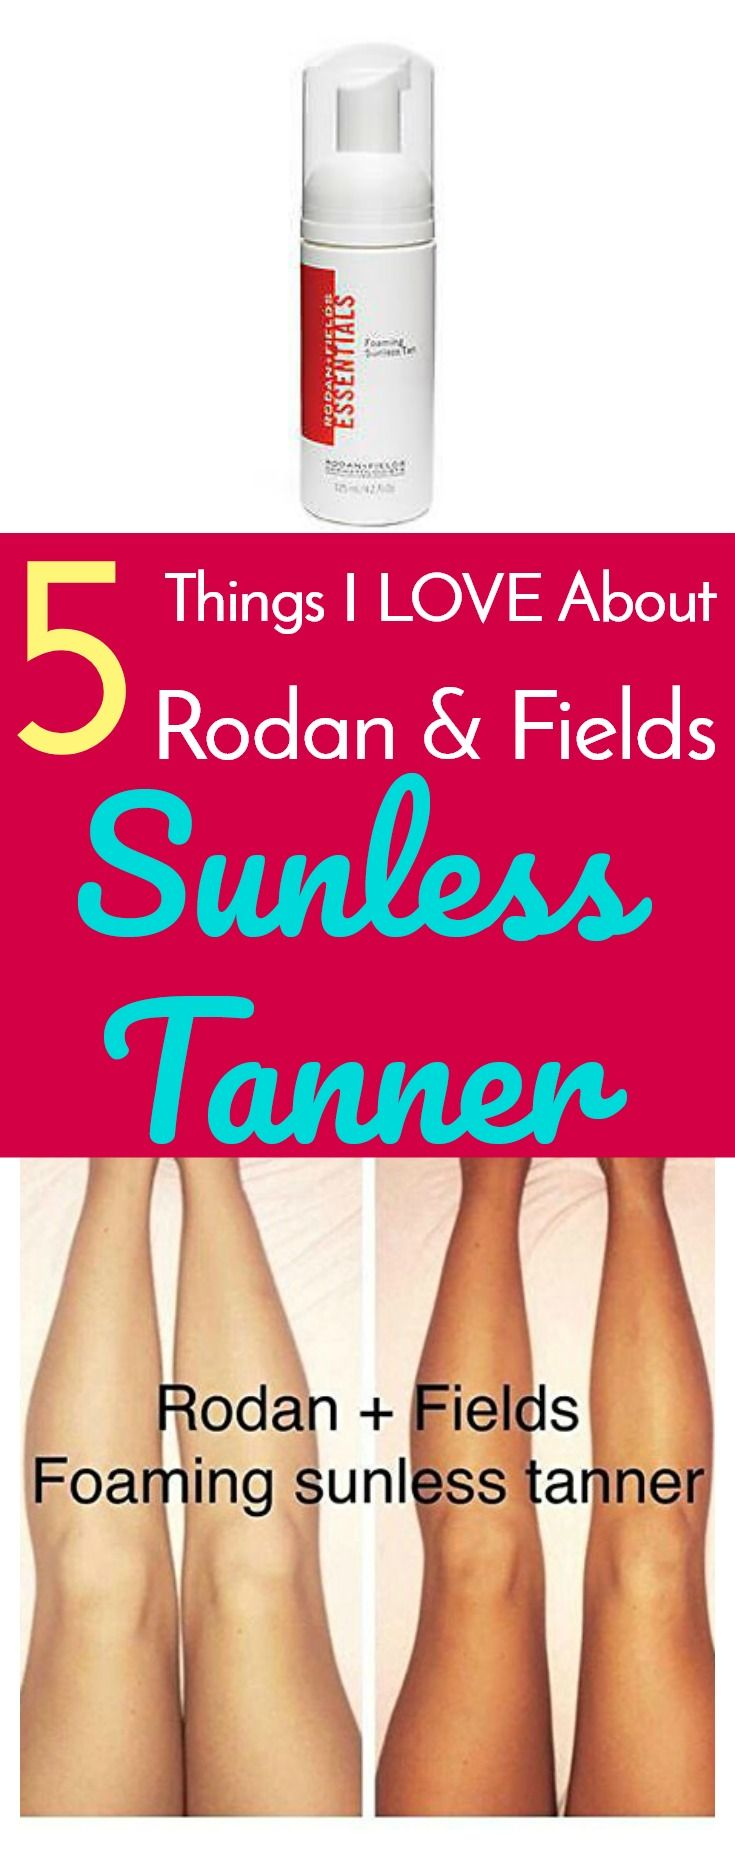 5 Things I love About Rodan & Fields Sunless Tanner